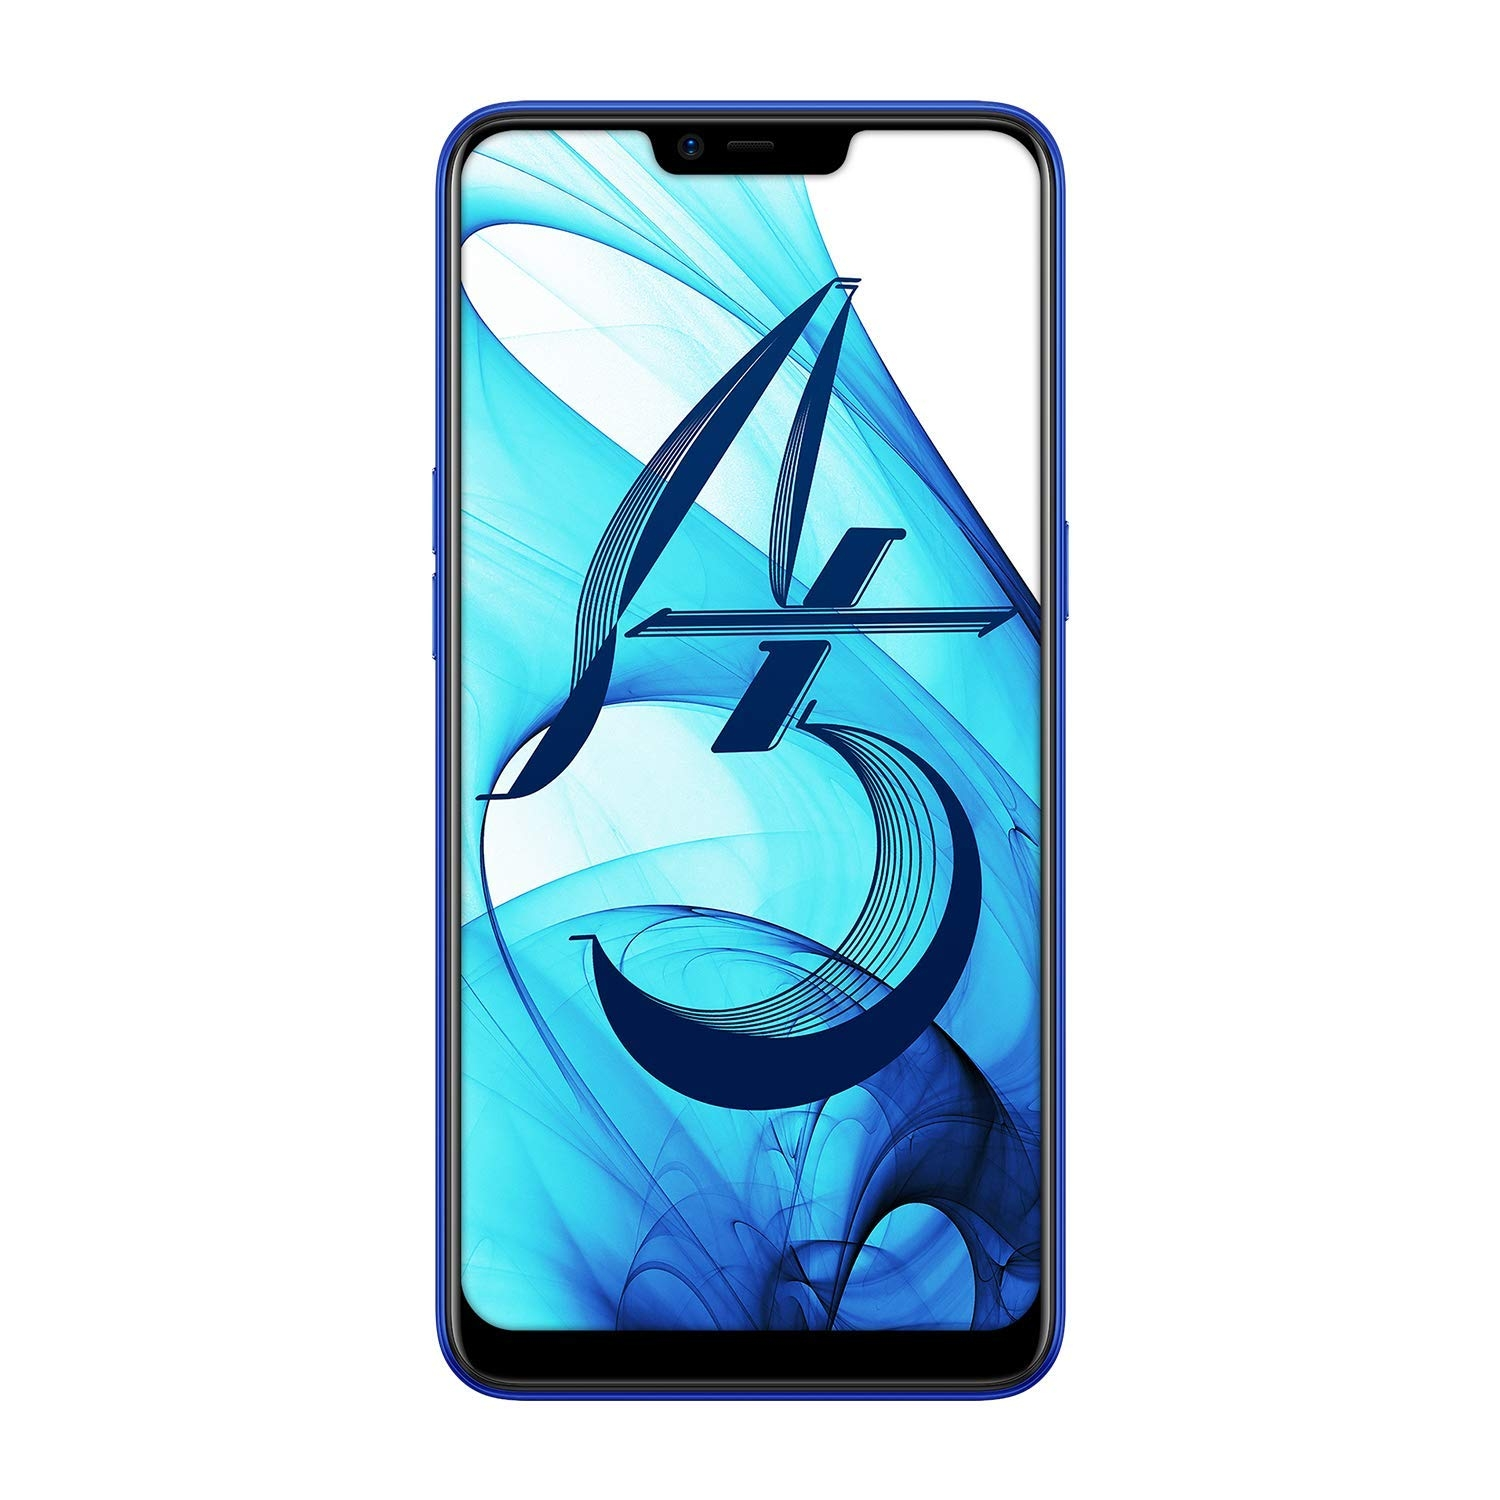 OPPO A5 (Diamond Blue, 32GB)